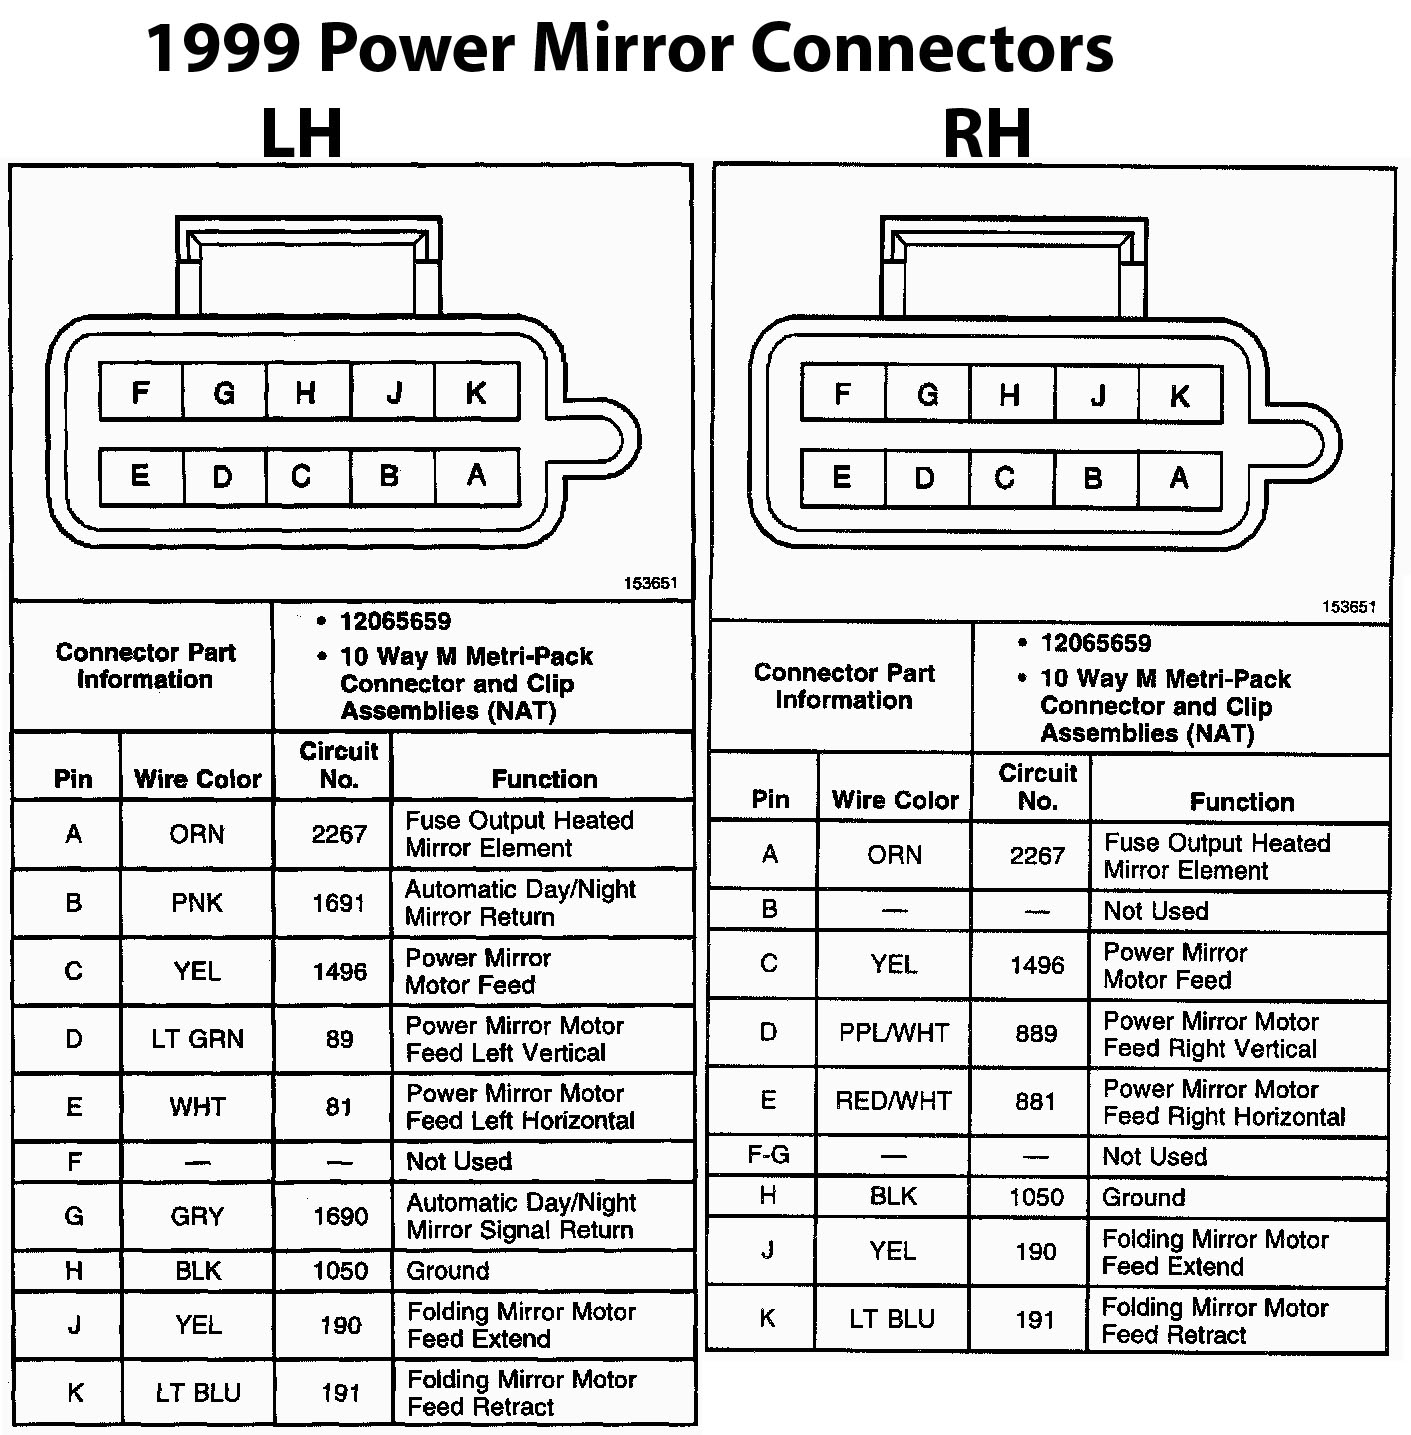 hight resolution of wrg 8538 2002 silverado fuse panel diagram 1990 chevy c1500 fuse box location c1500 fuse box